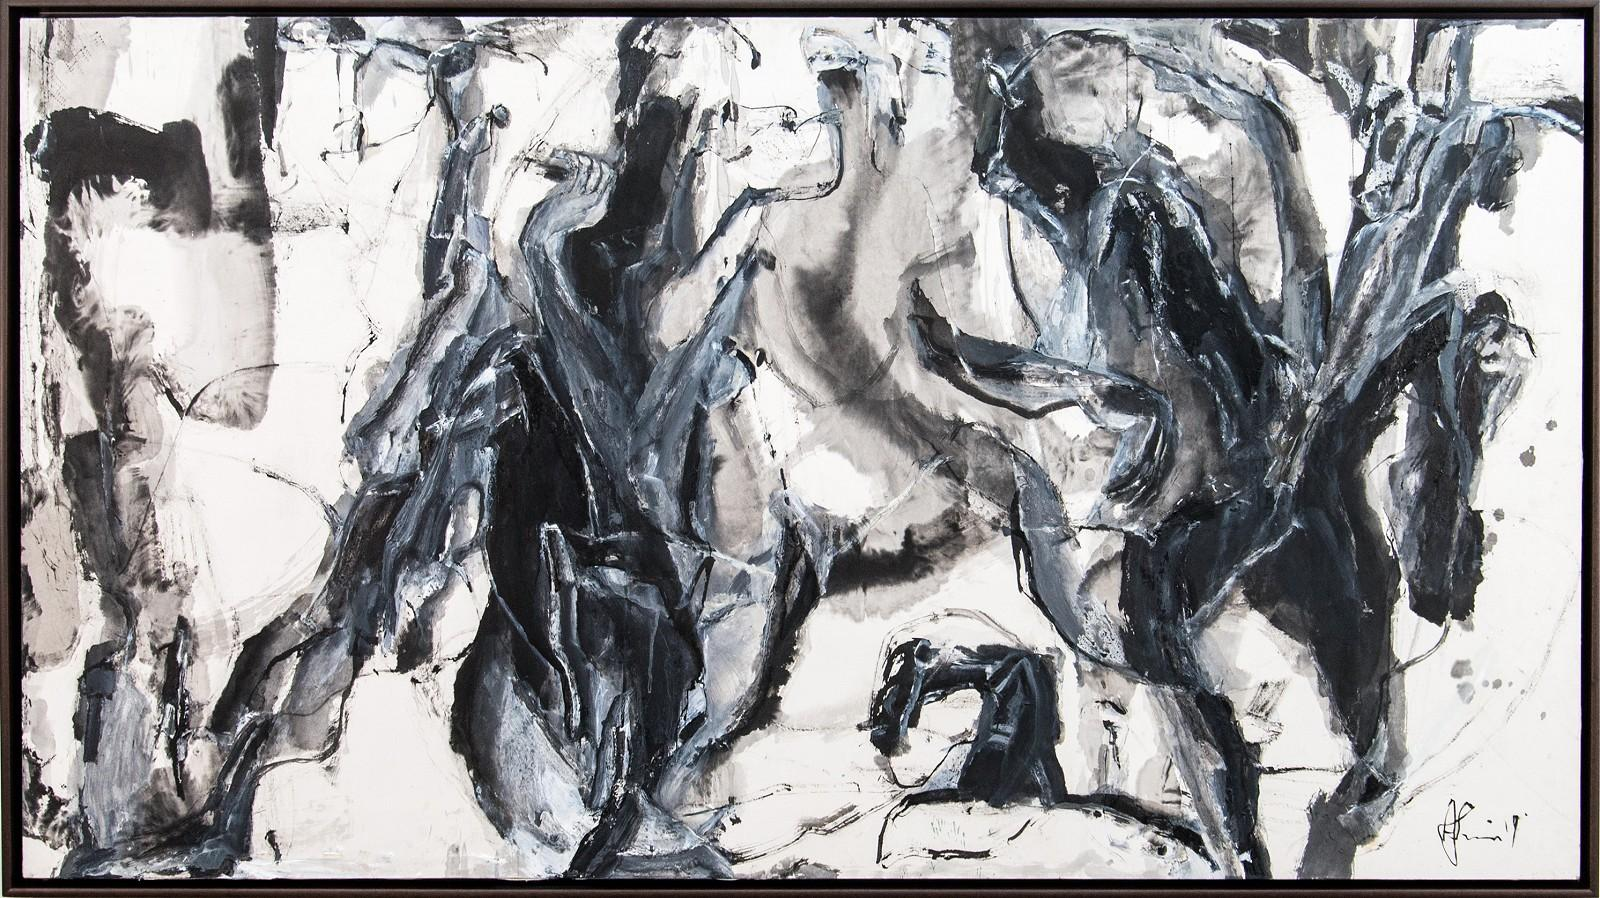 Epic of Darkness - black, gray, gestural, abstract, acrylic, ink, mixed media